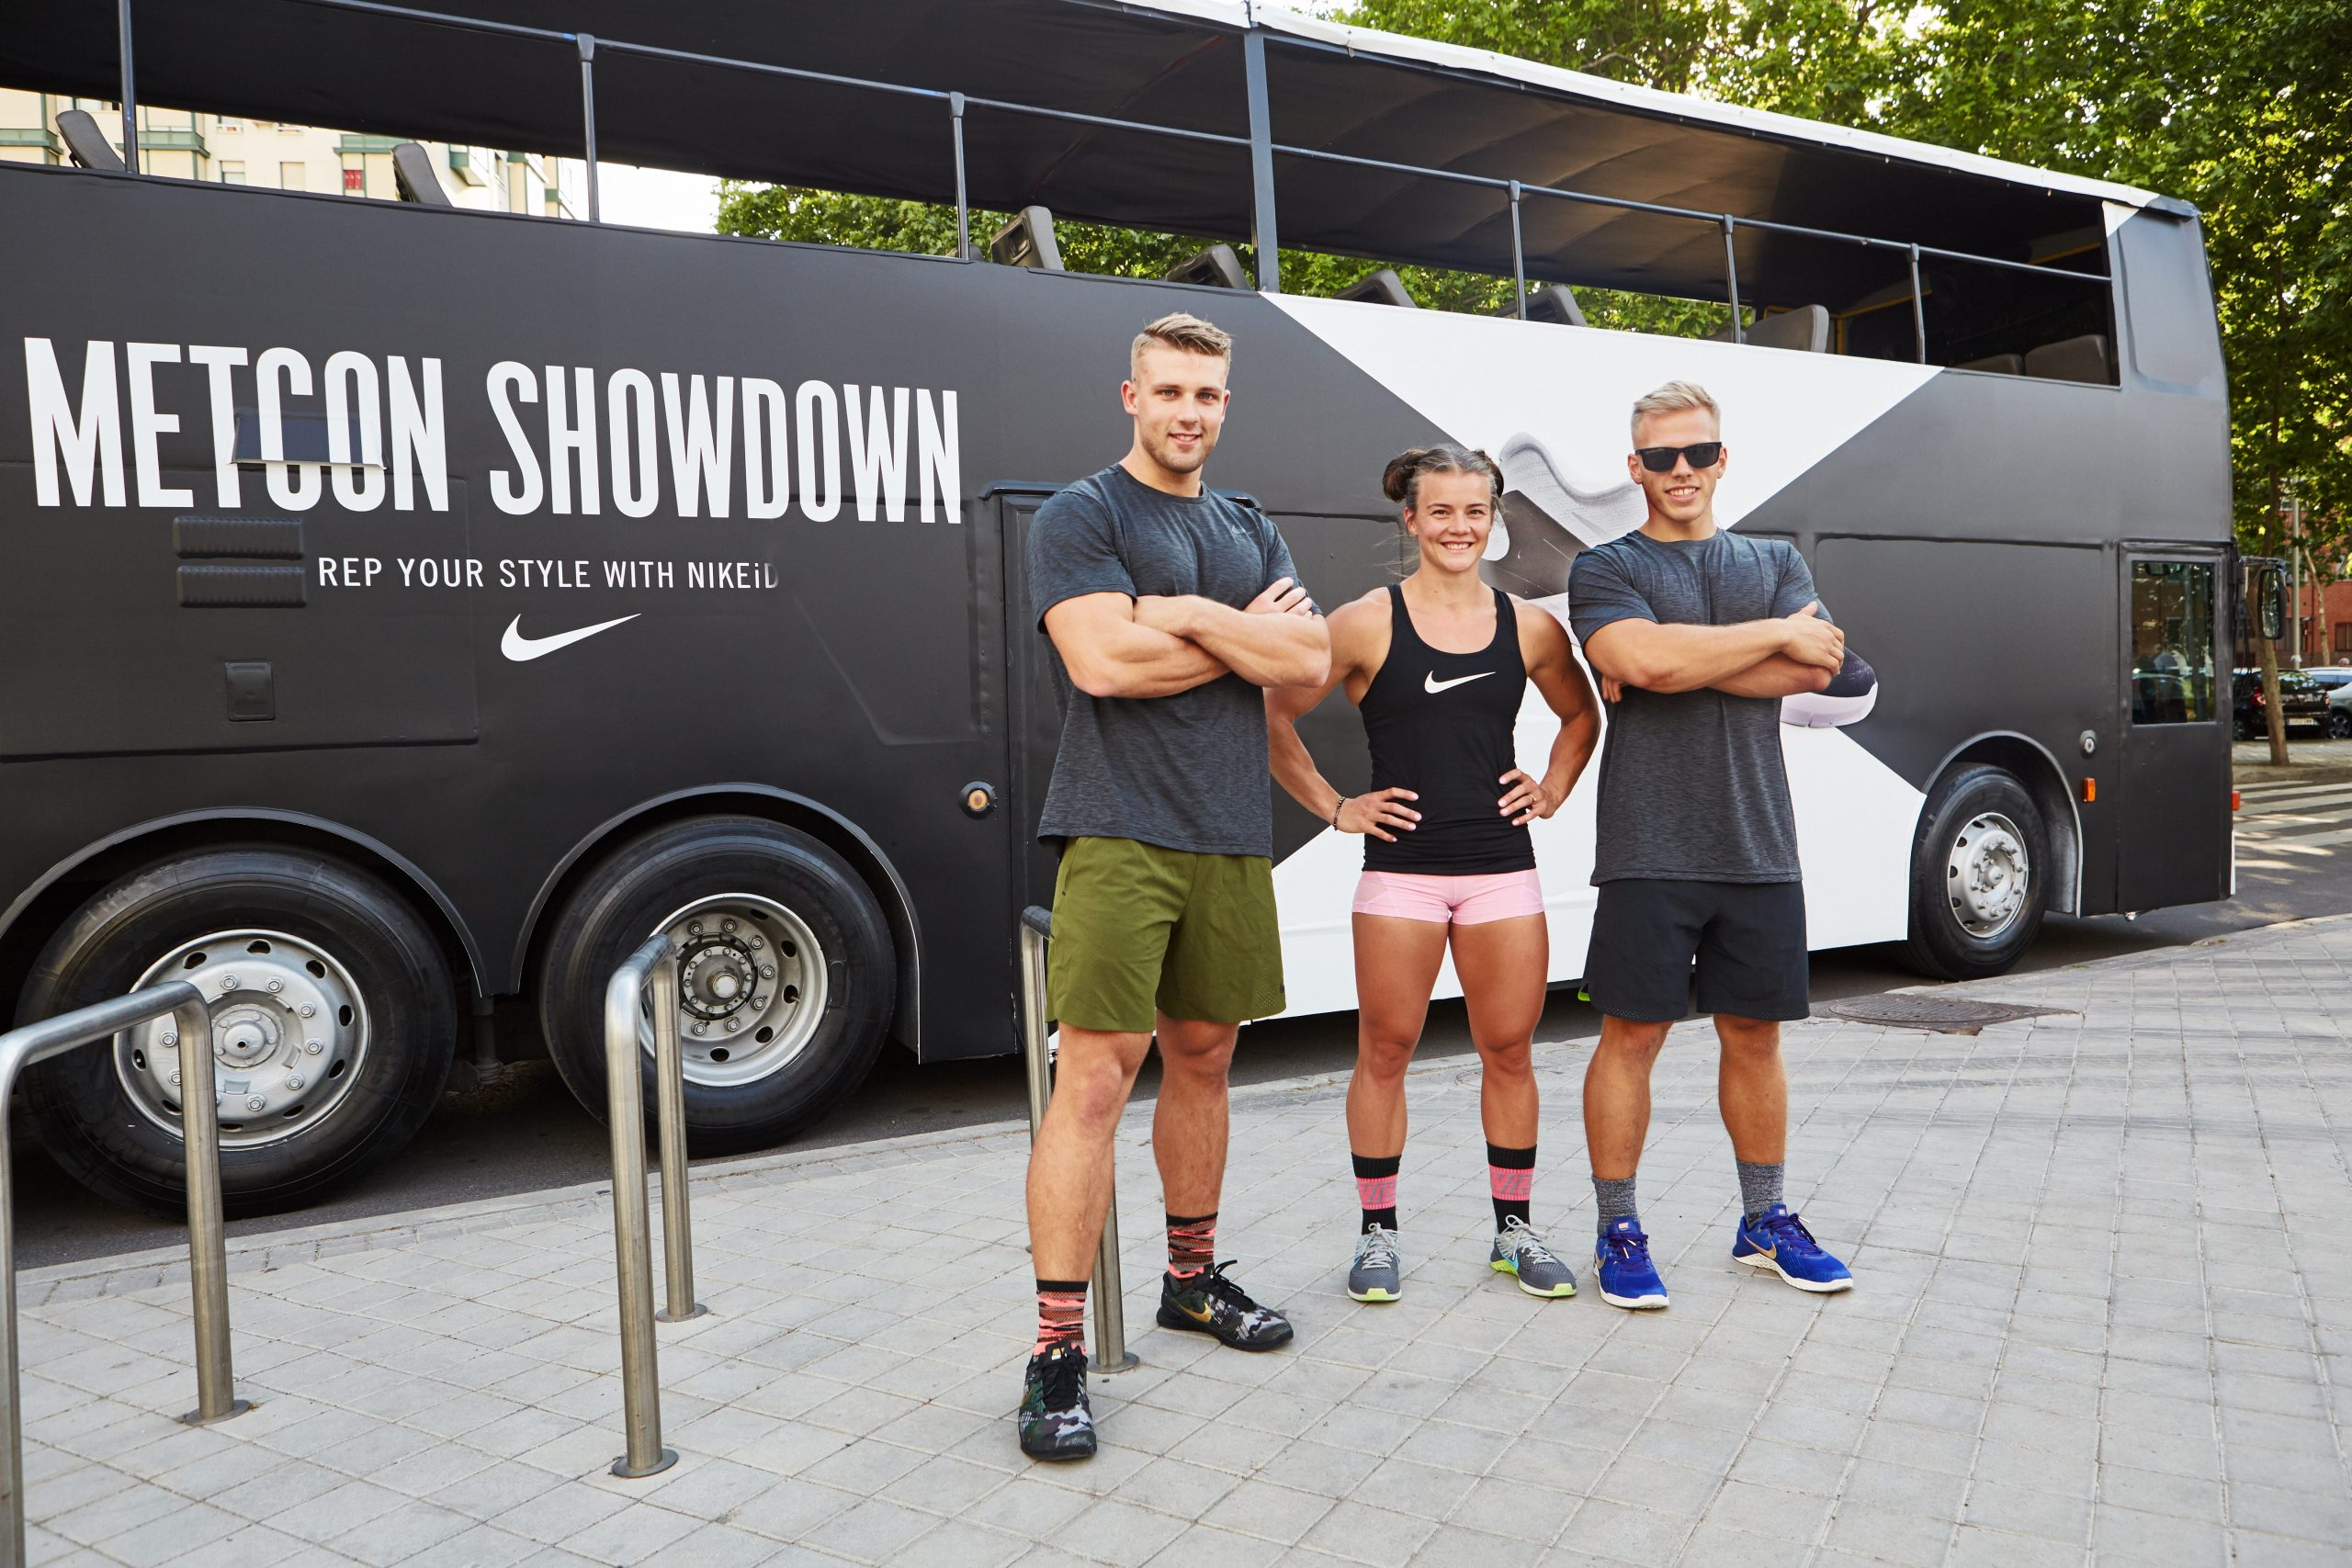 Nike Athletes outside bus